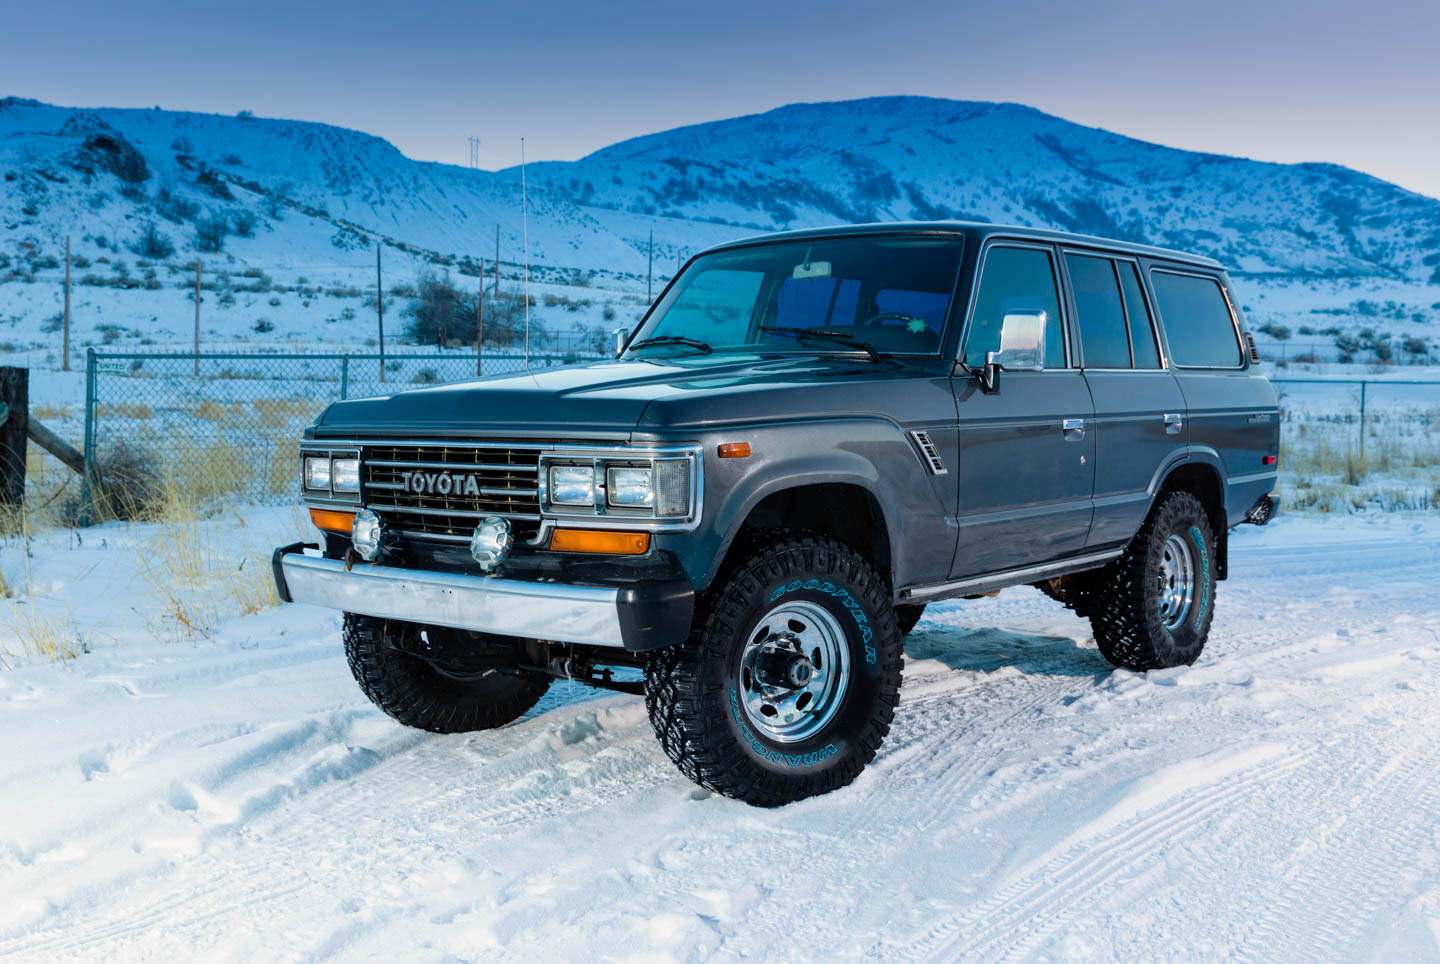 Toyota Land Cruiser from the 1980s